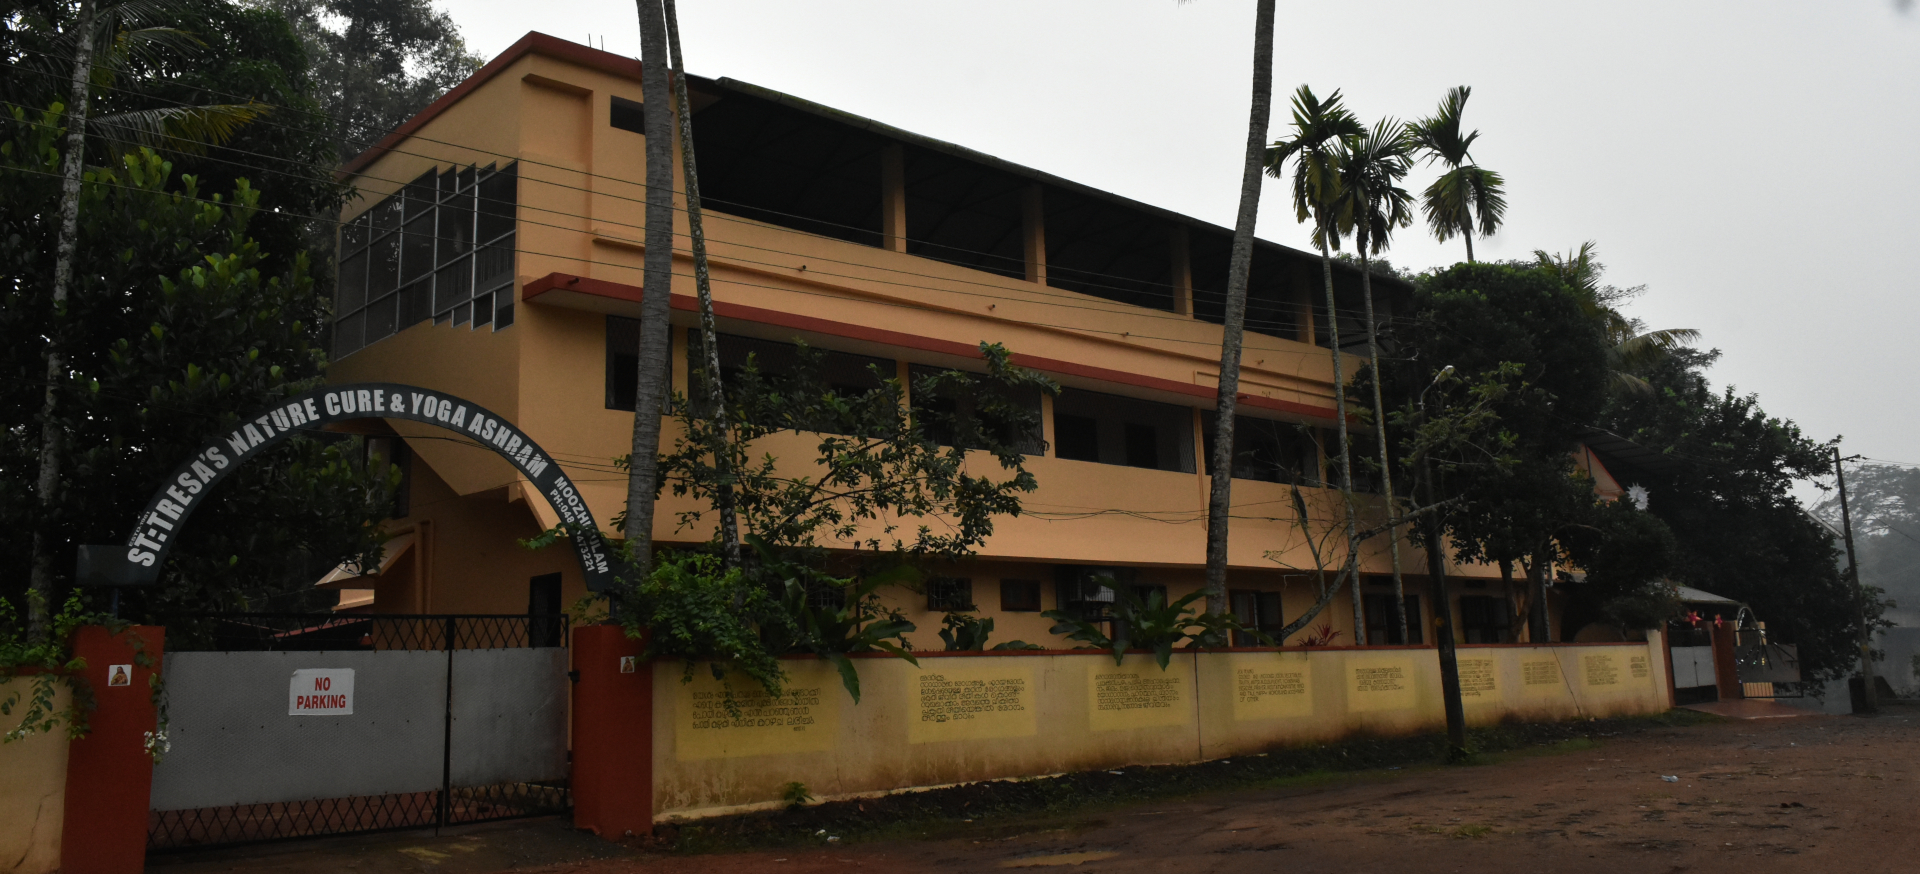 St.Tresa's Nature Cure and Yogashram, Moozhikulam